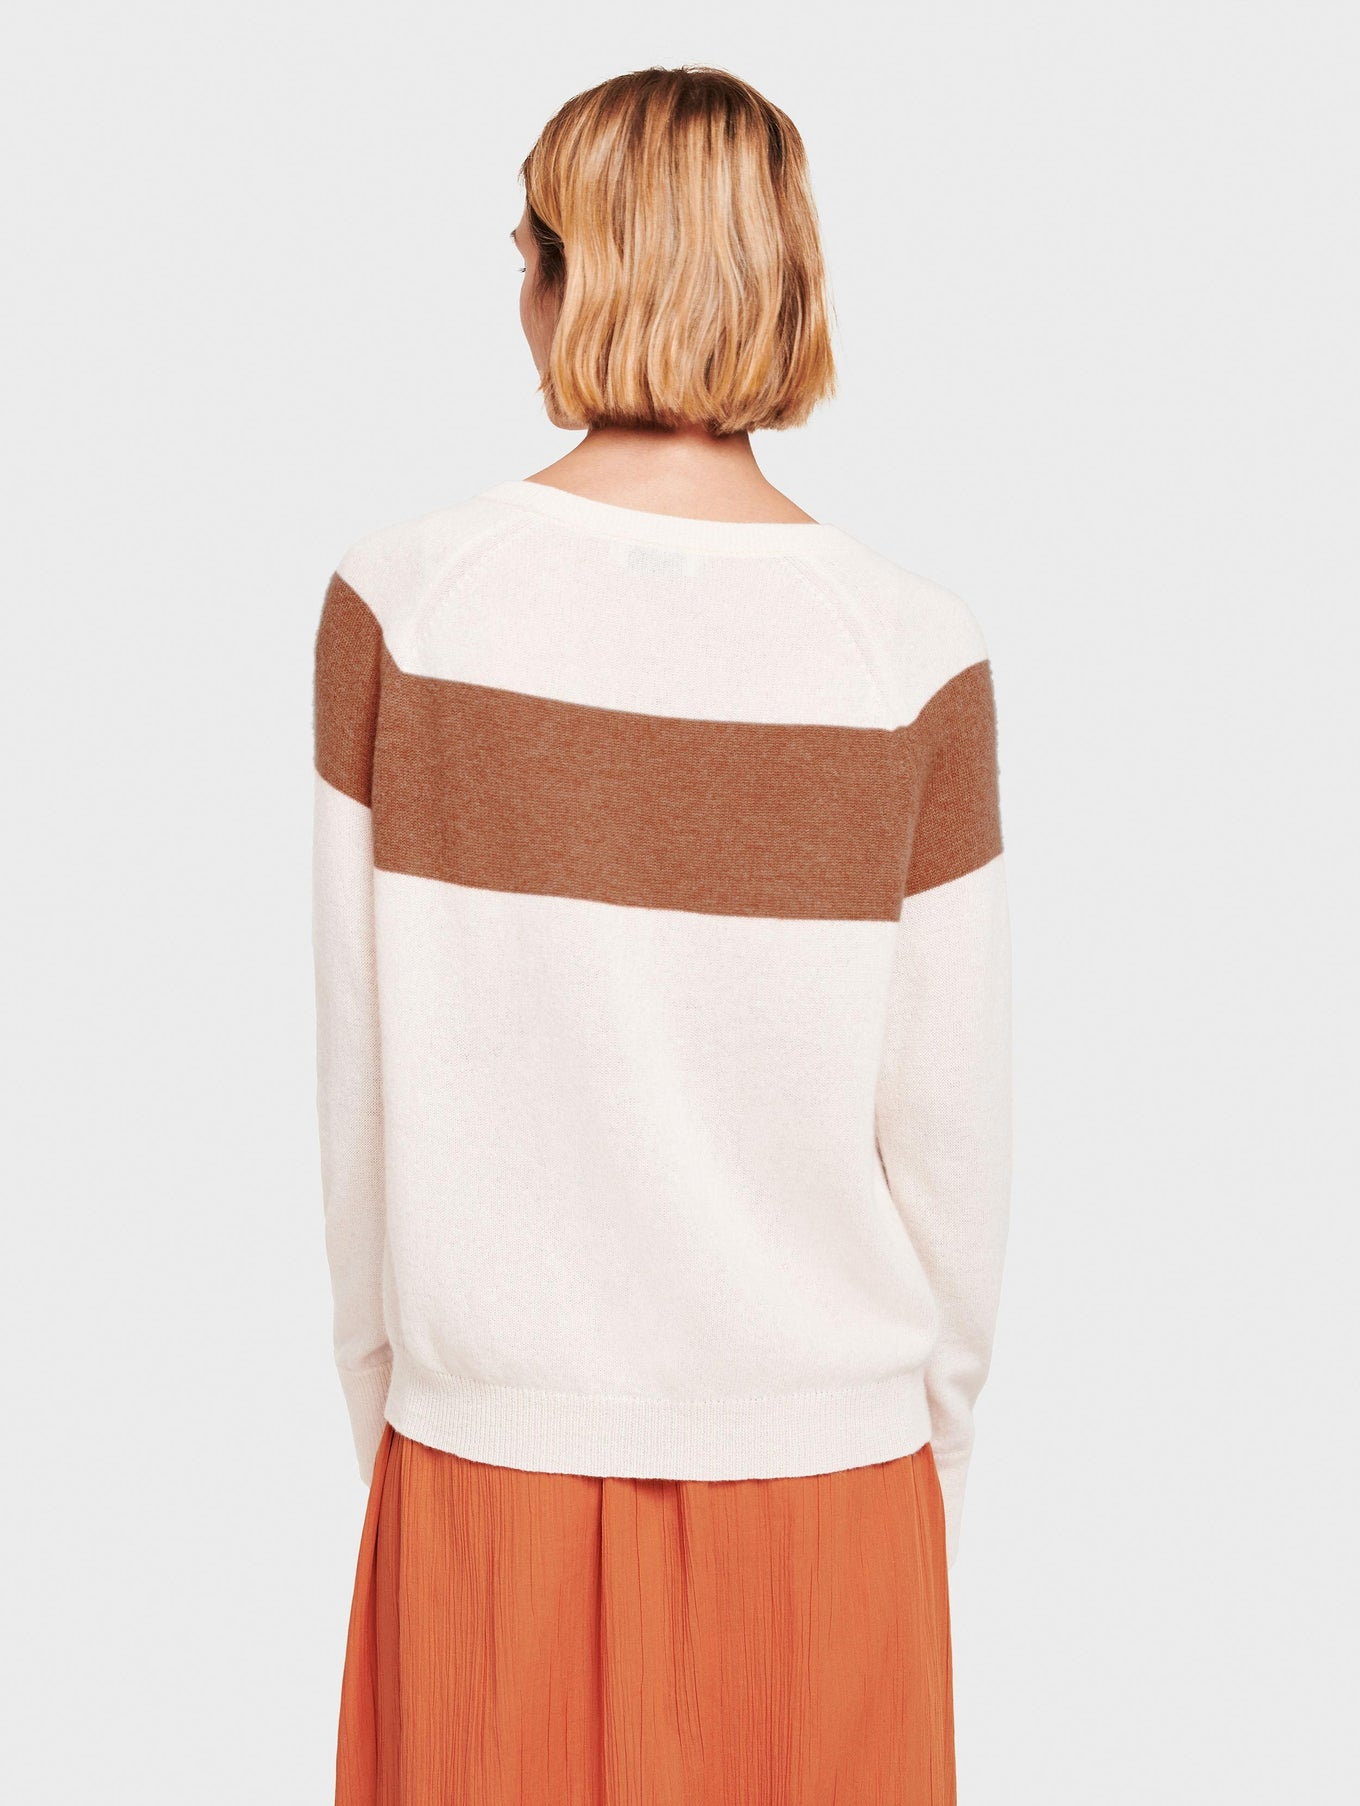 Essential Cashmere Block Stripe Sweatshirt - White/Sandalwood - Image 3